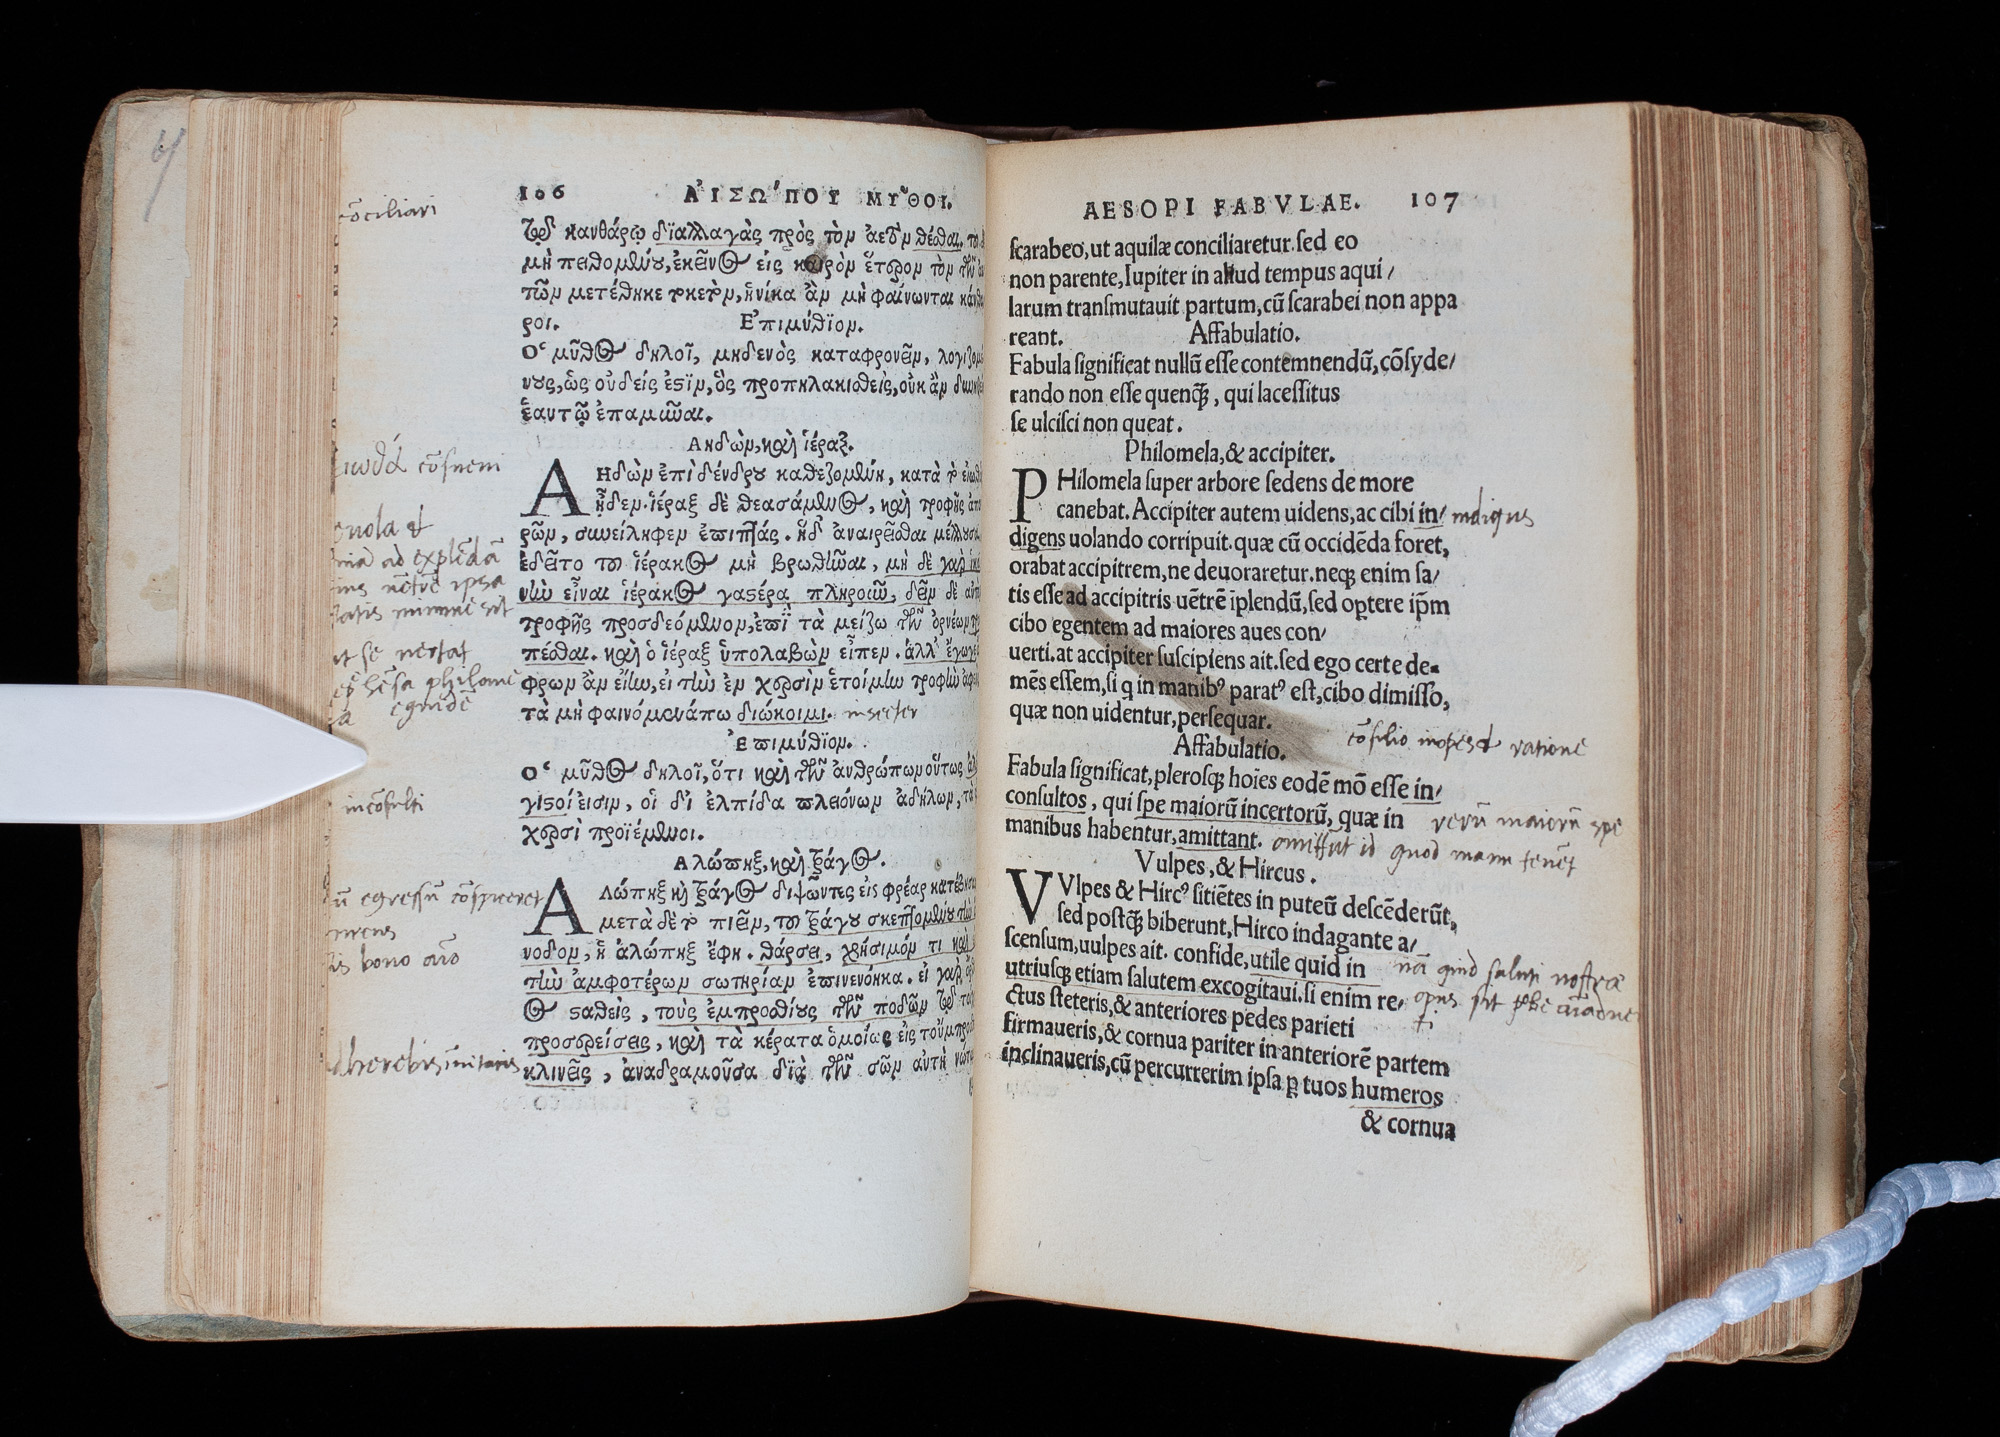 Queens Old Library Blog Rare Books And Manuscripts At Queens College University Of Cambridge Uk